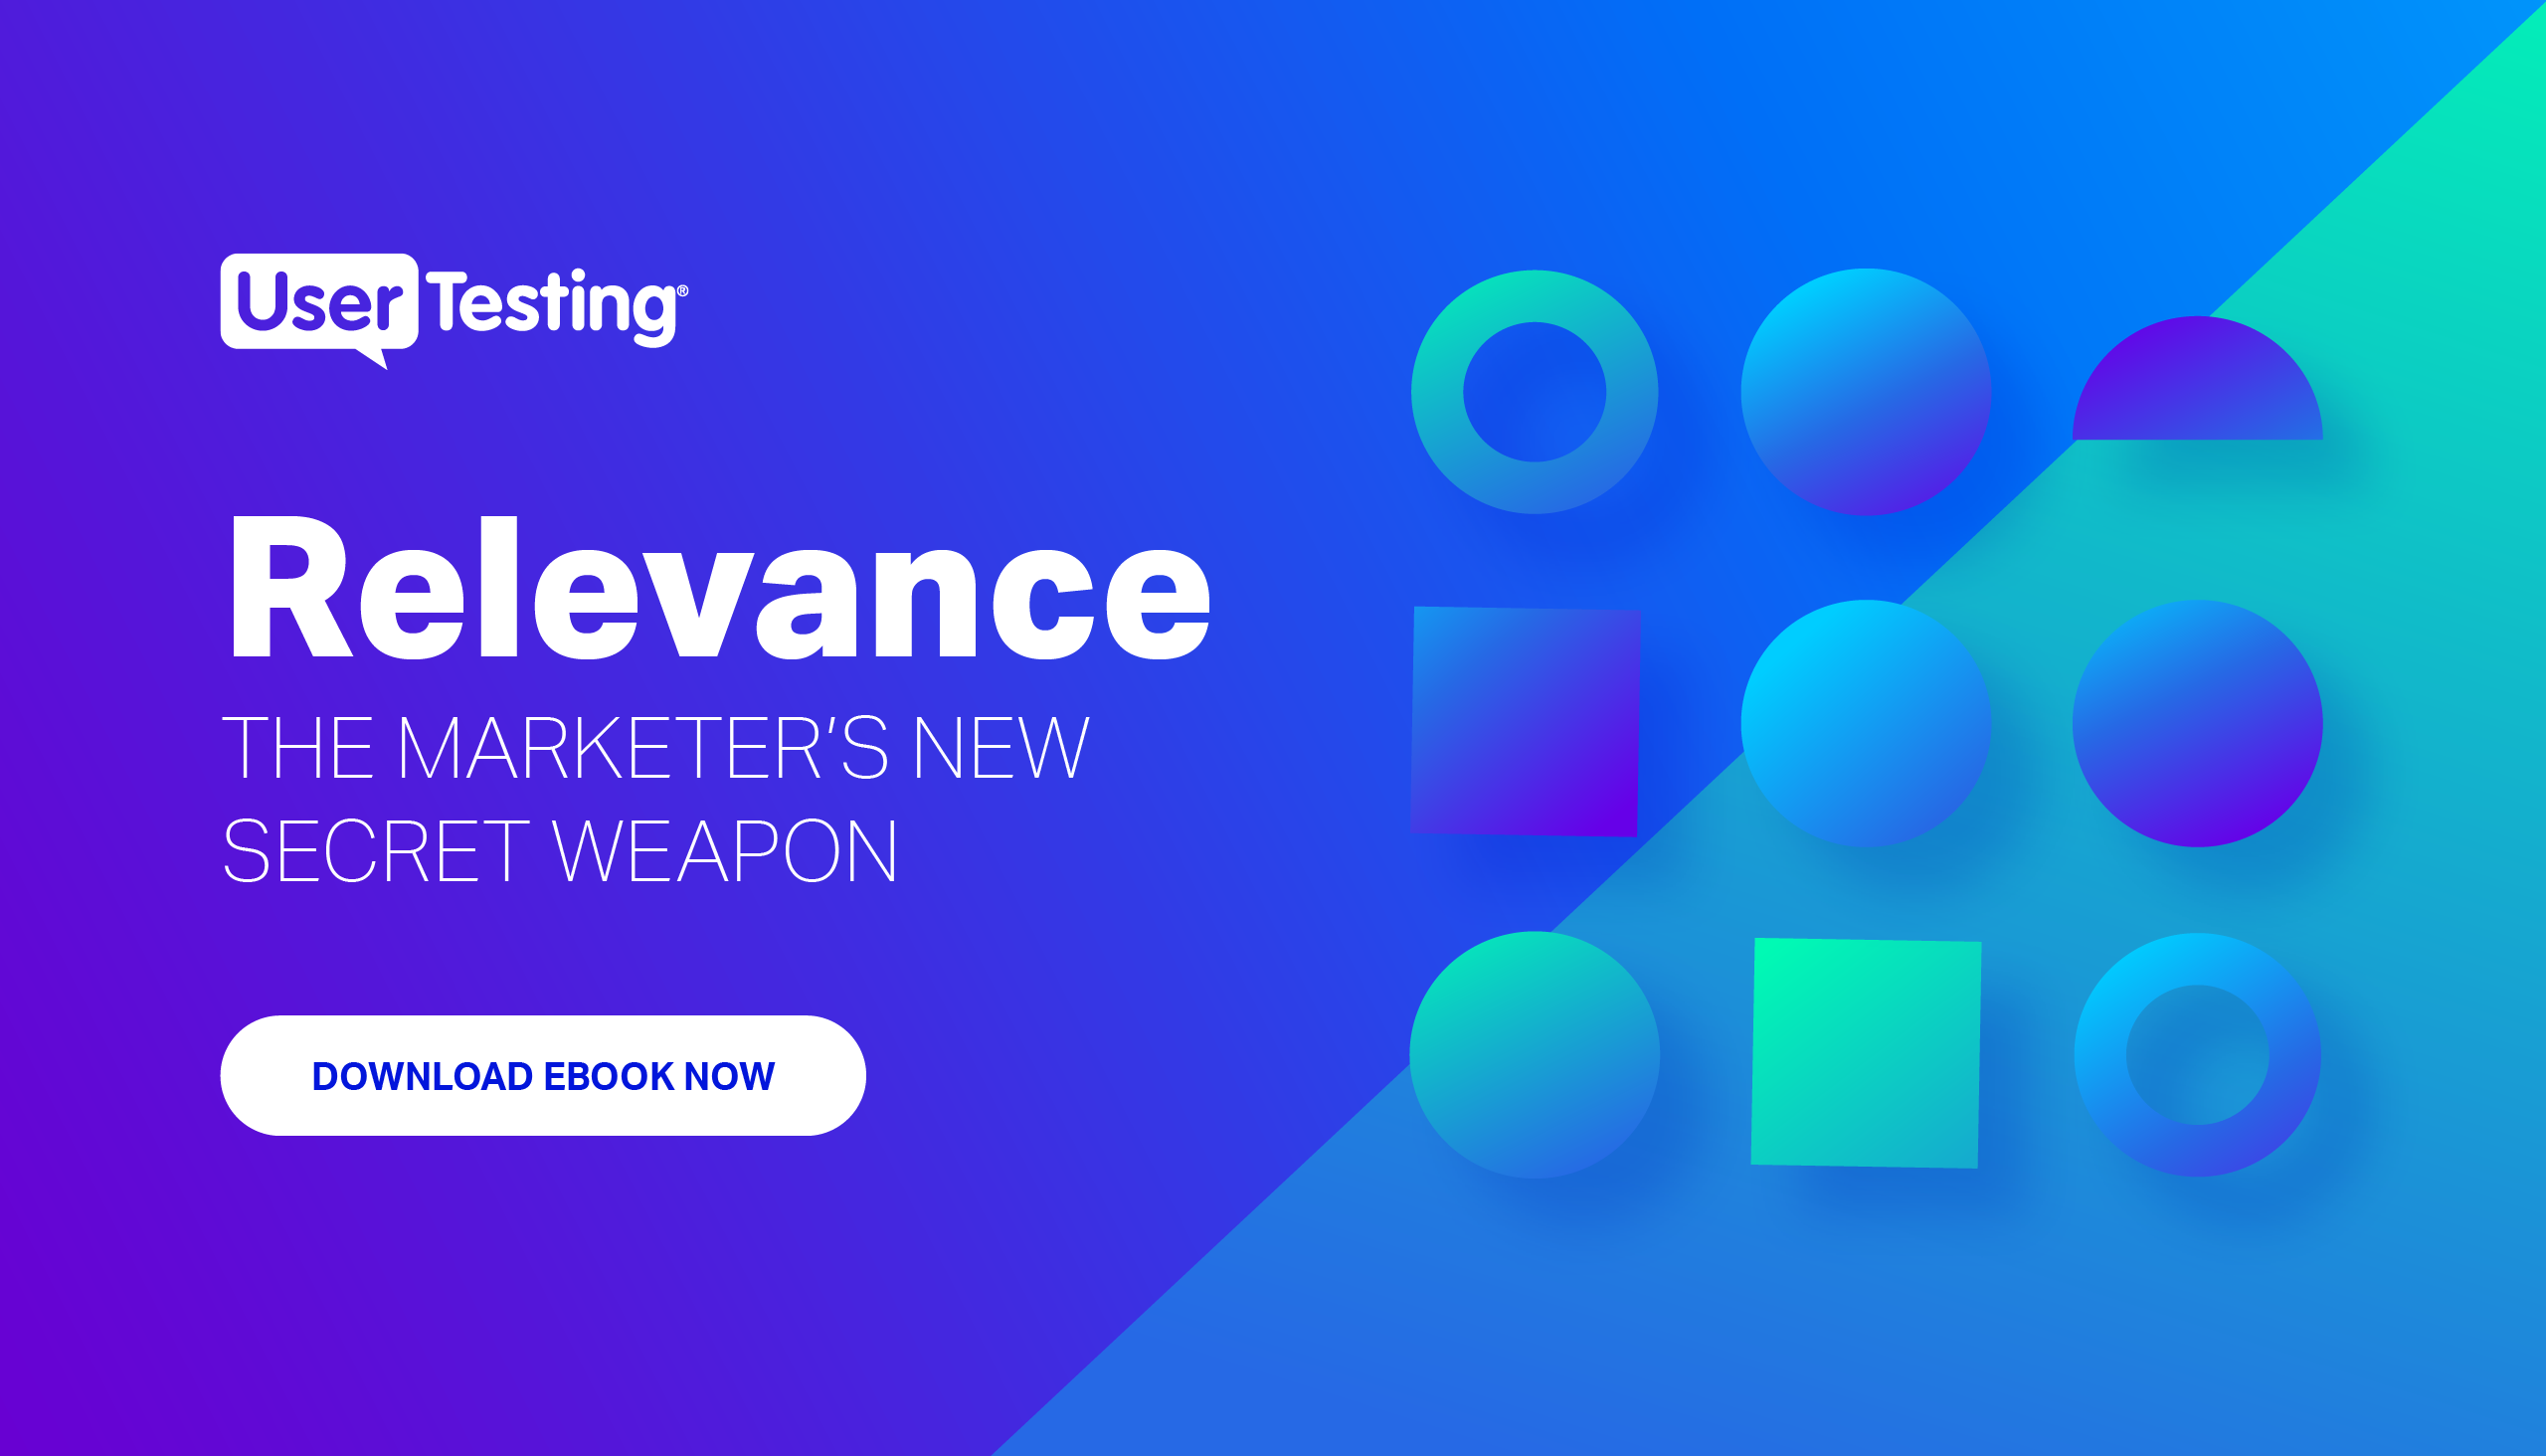 Relevance: the marketer's new secret weapon